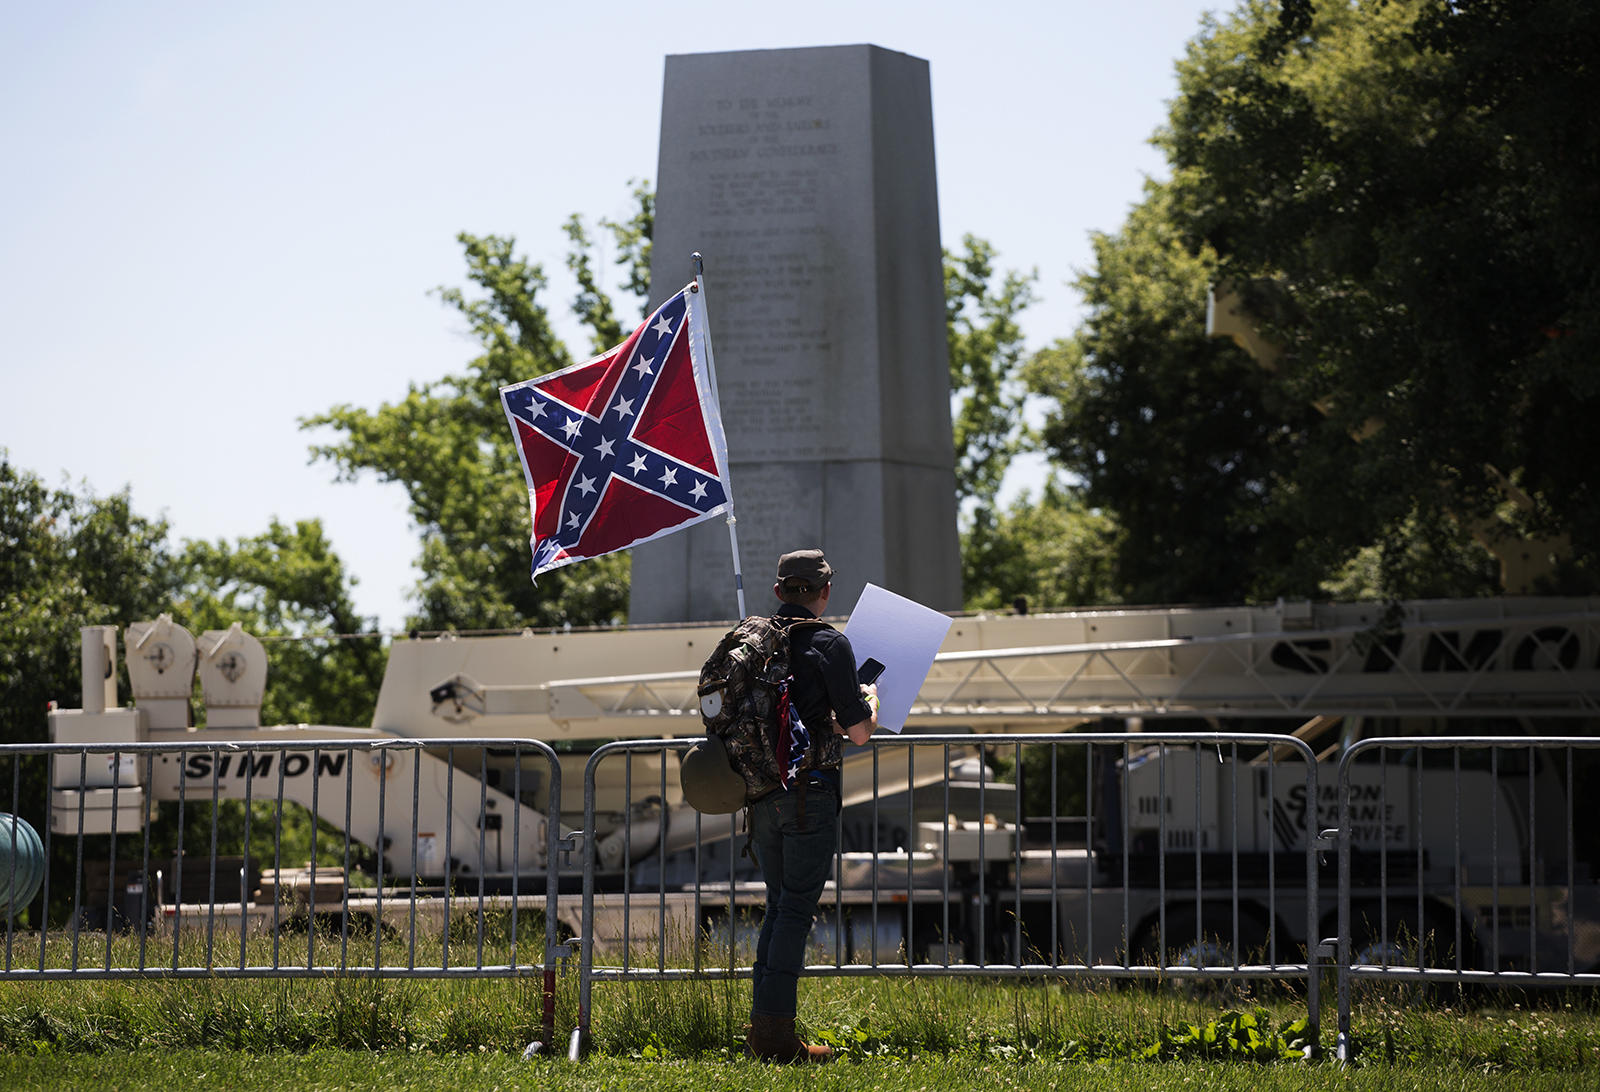 Brendan Koch, of Arnold, Missouri, looks at the Confederate Memorial after crews removed the top of it Thursday morning. (Carolina Hidalgo, St. Louis Public Radio)